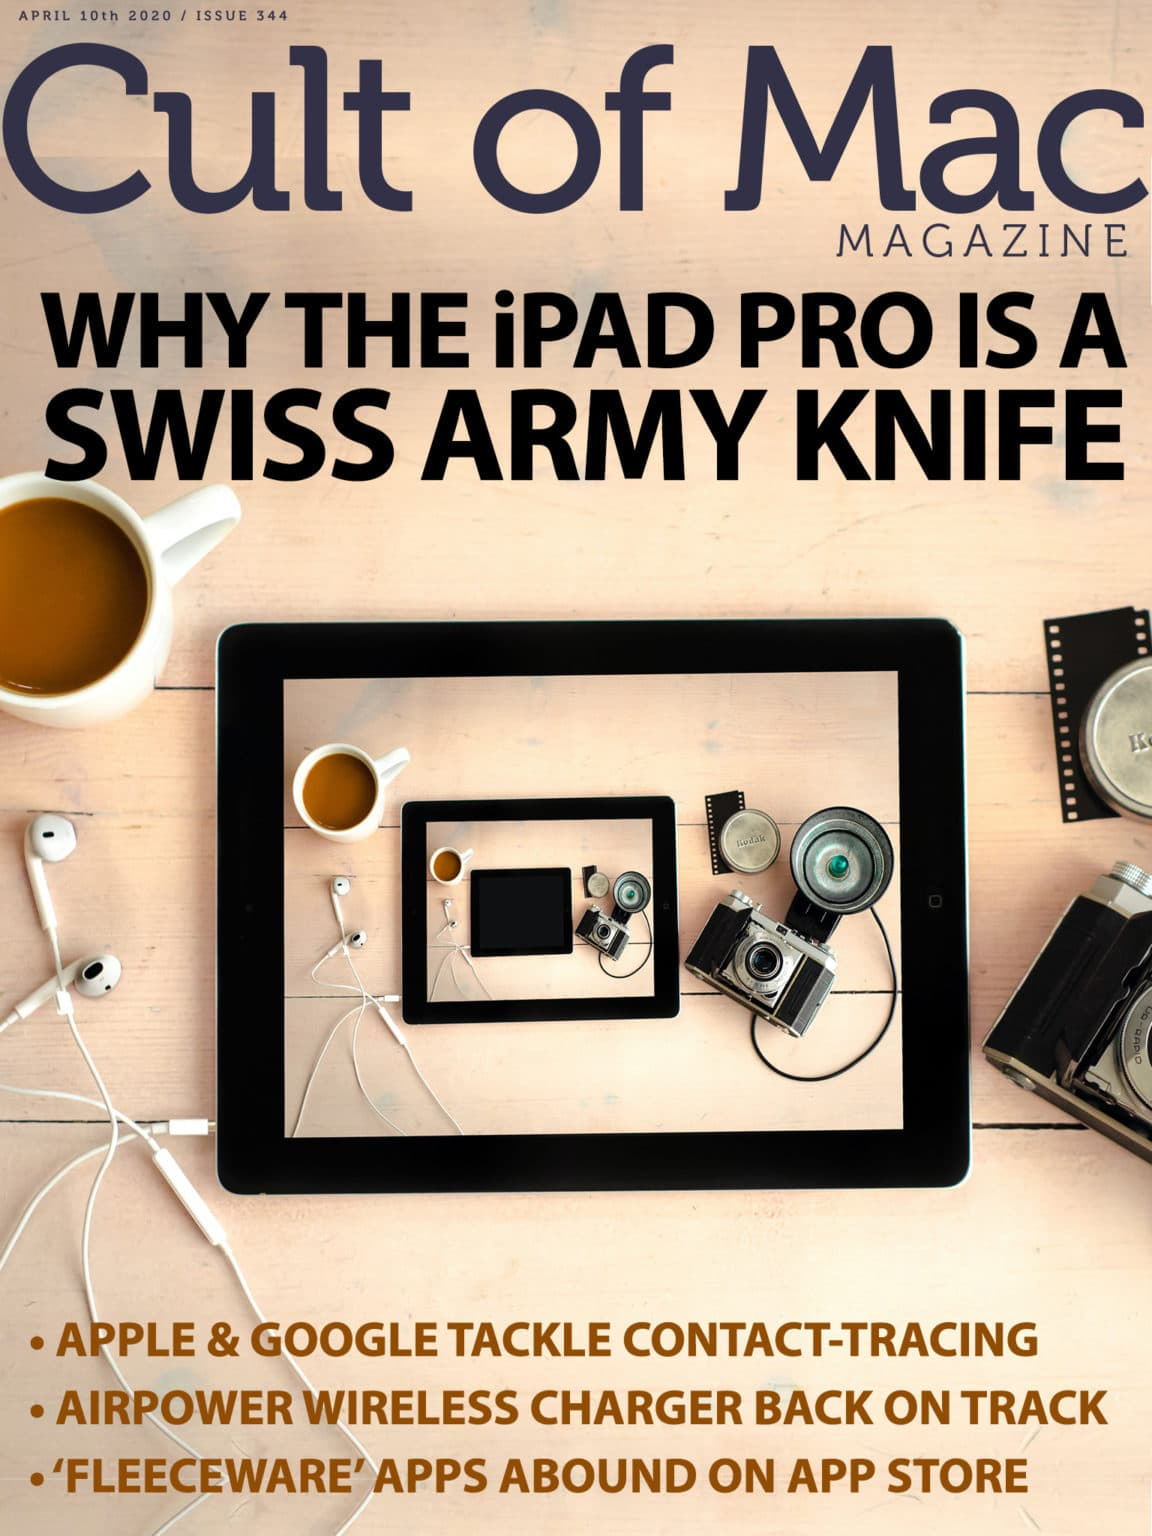 iPad Pro as Swiss Army knife: Just exactly what kind of tool(s) do you need?